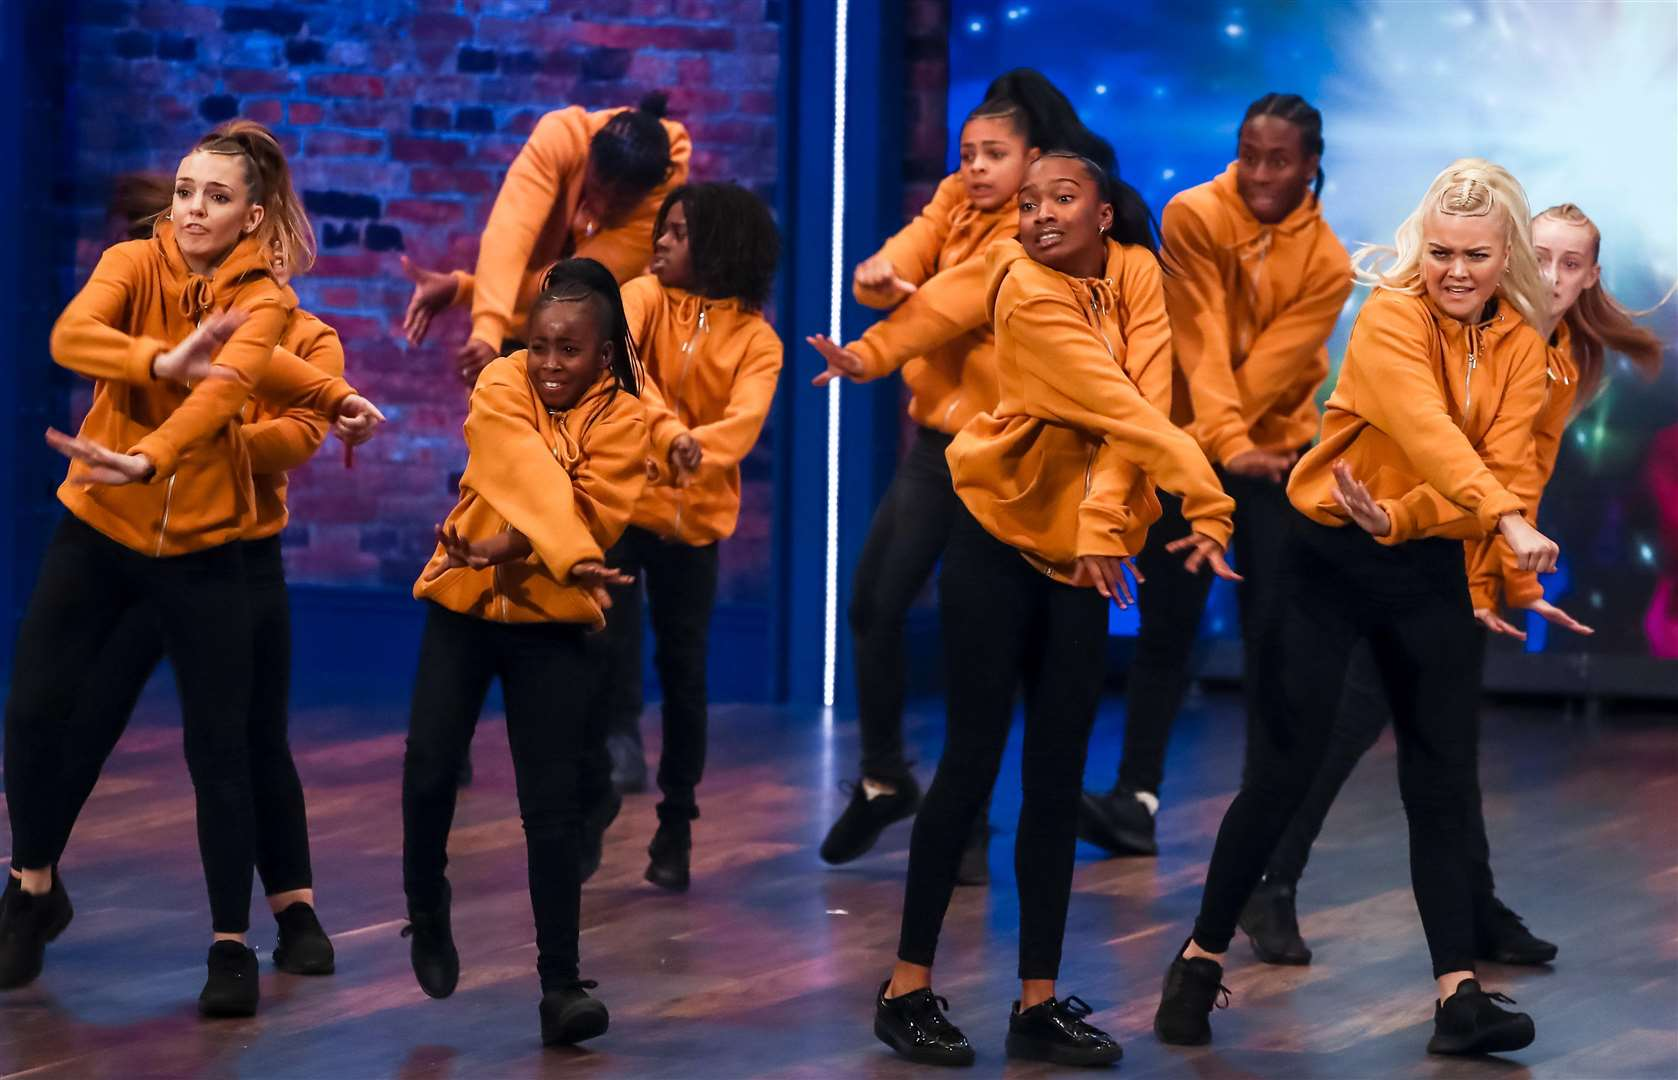 Dolcie Simmons (right) performs with London-based street dance group Prospects Fraternity on BBC TV's The Greatest Dancer. Photo by Tom Dymond, courtesy of Syco/Thames Productions.